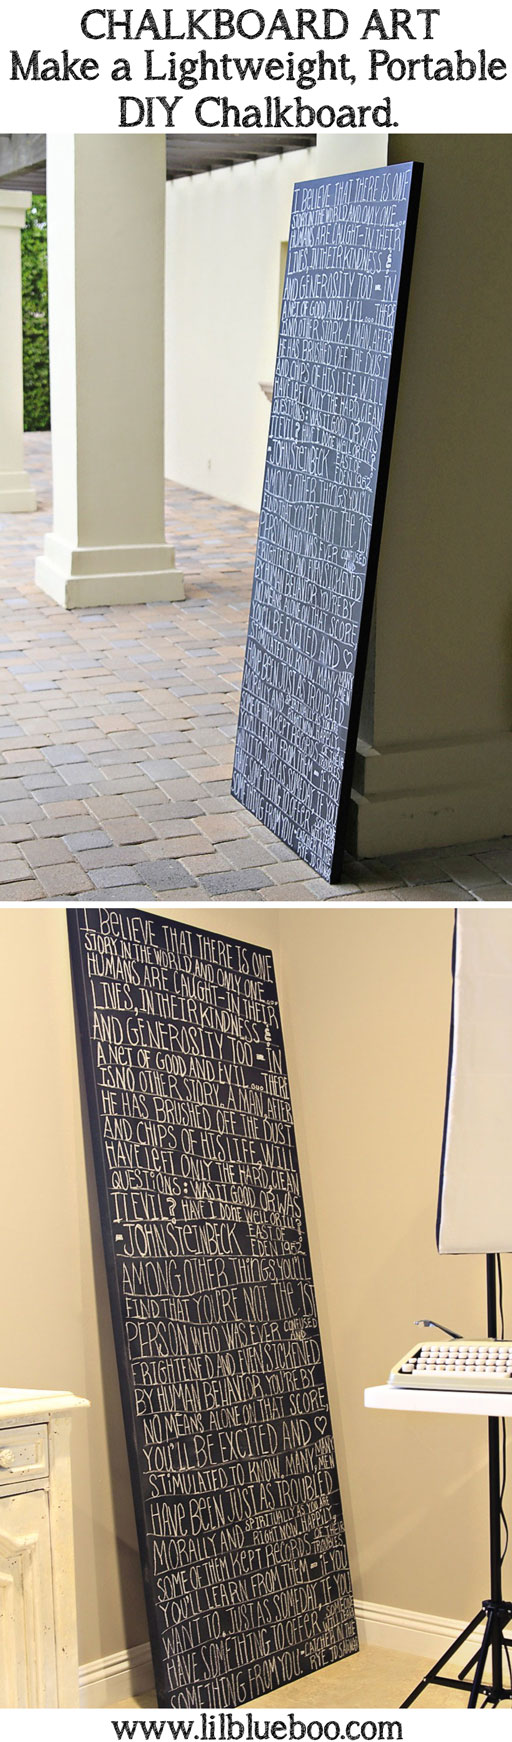 Chalkboard Art: Make a Large Lightweight Portable Chalkboard via lilblueboo.com #diy #tutorial #chalkboard